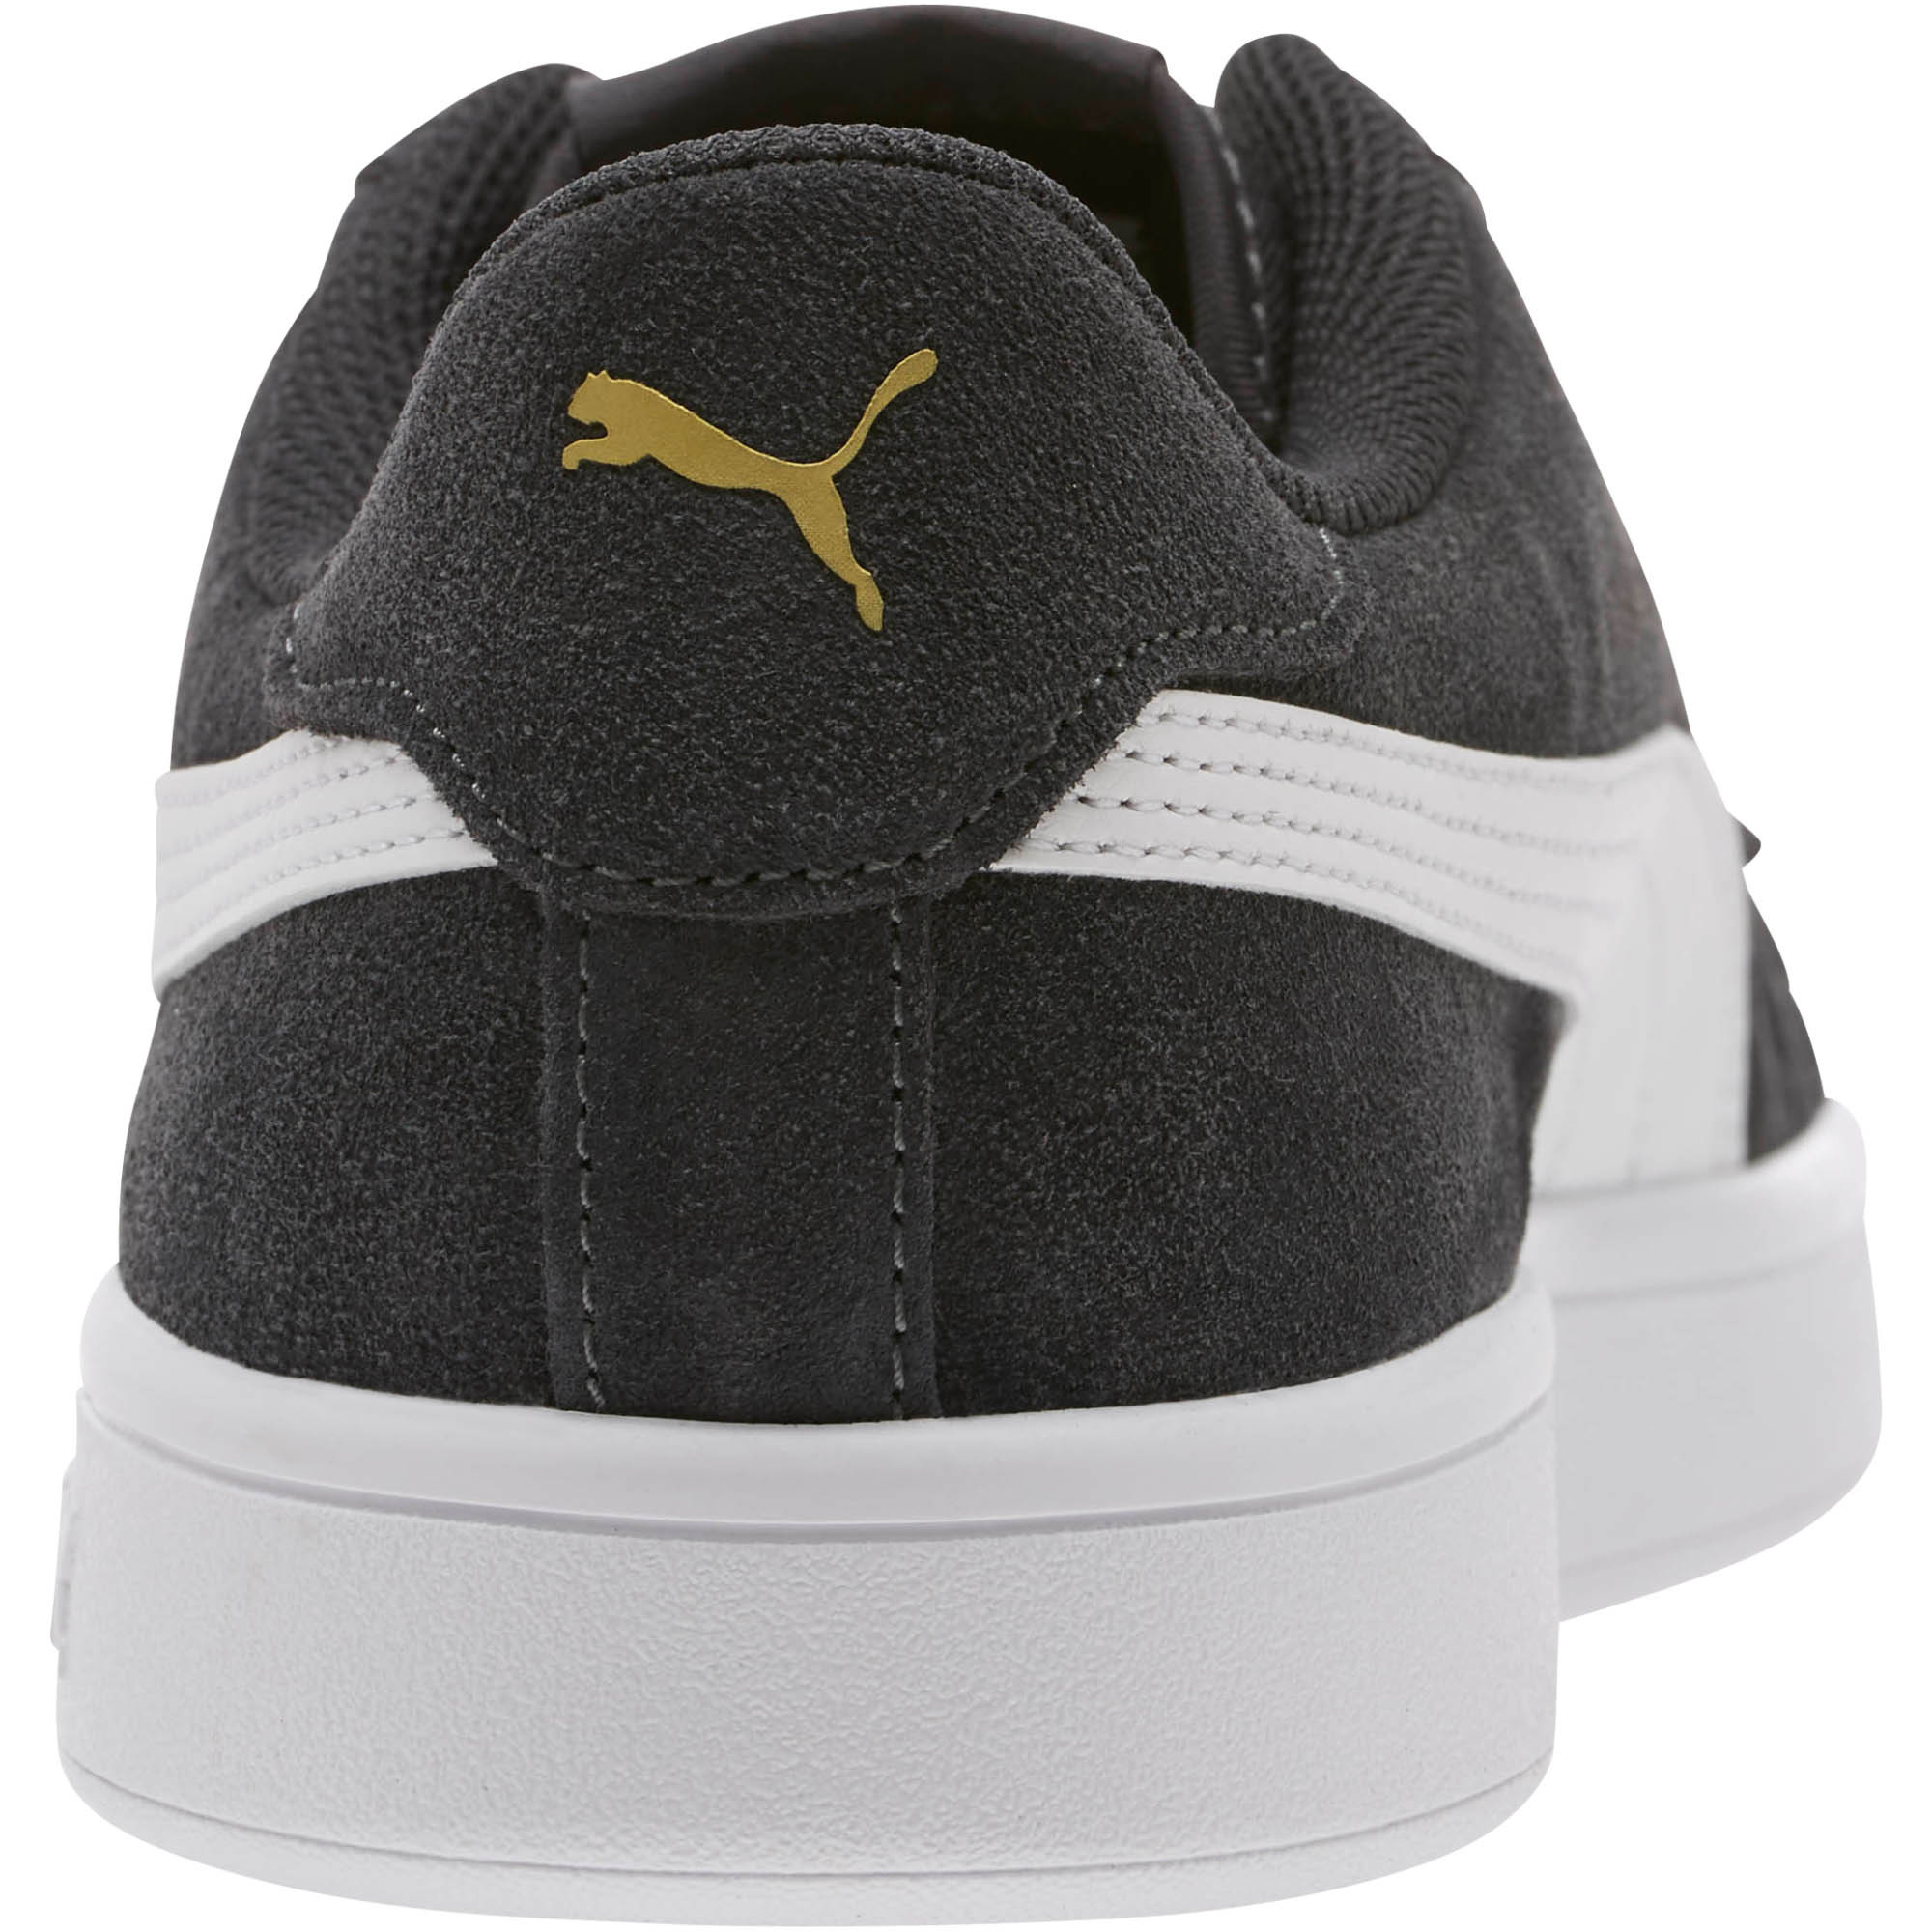 PUMA-PUMA-Smash-v2-Sneakers-Men-Shoe-Basics thumbnail 16